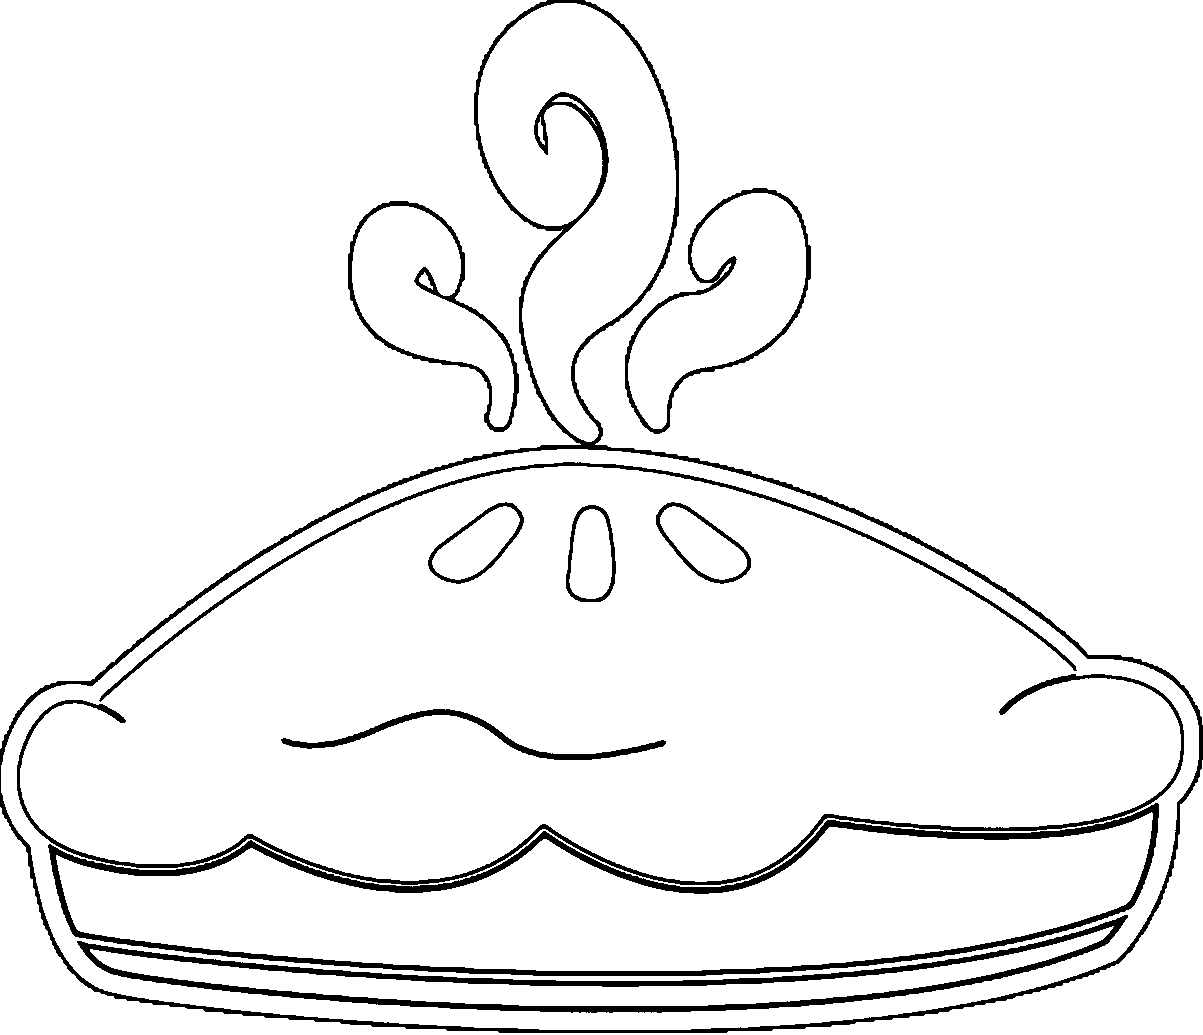 pie coloring page - apple pie coloring page